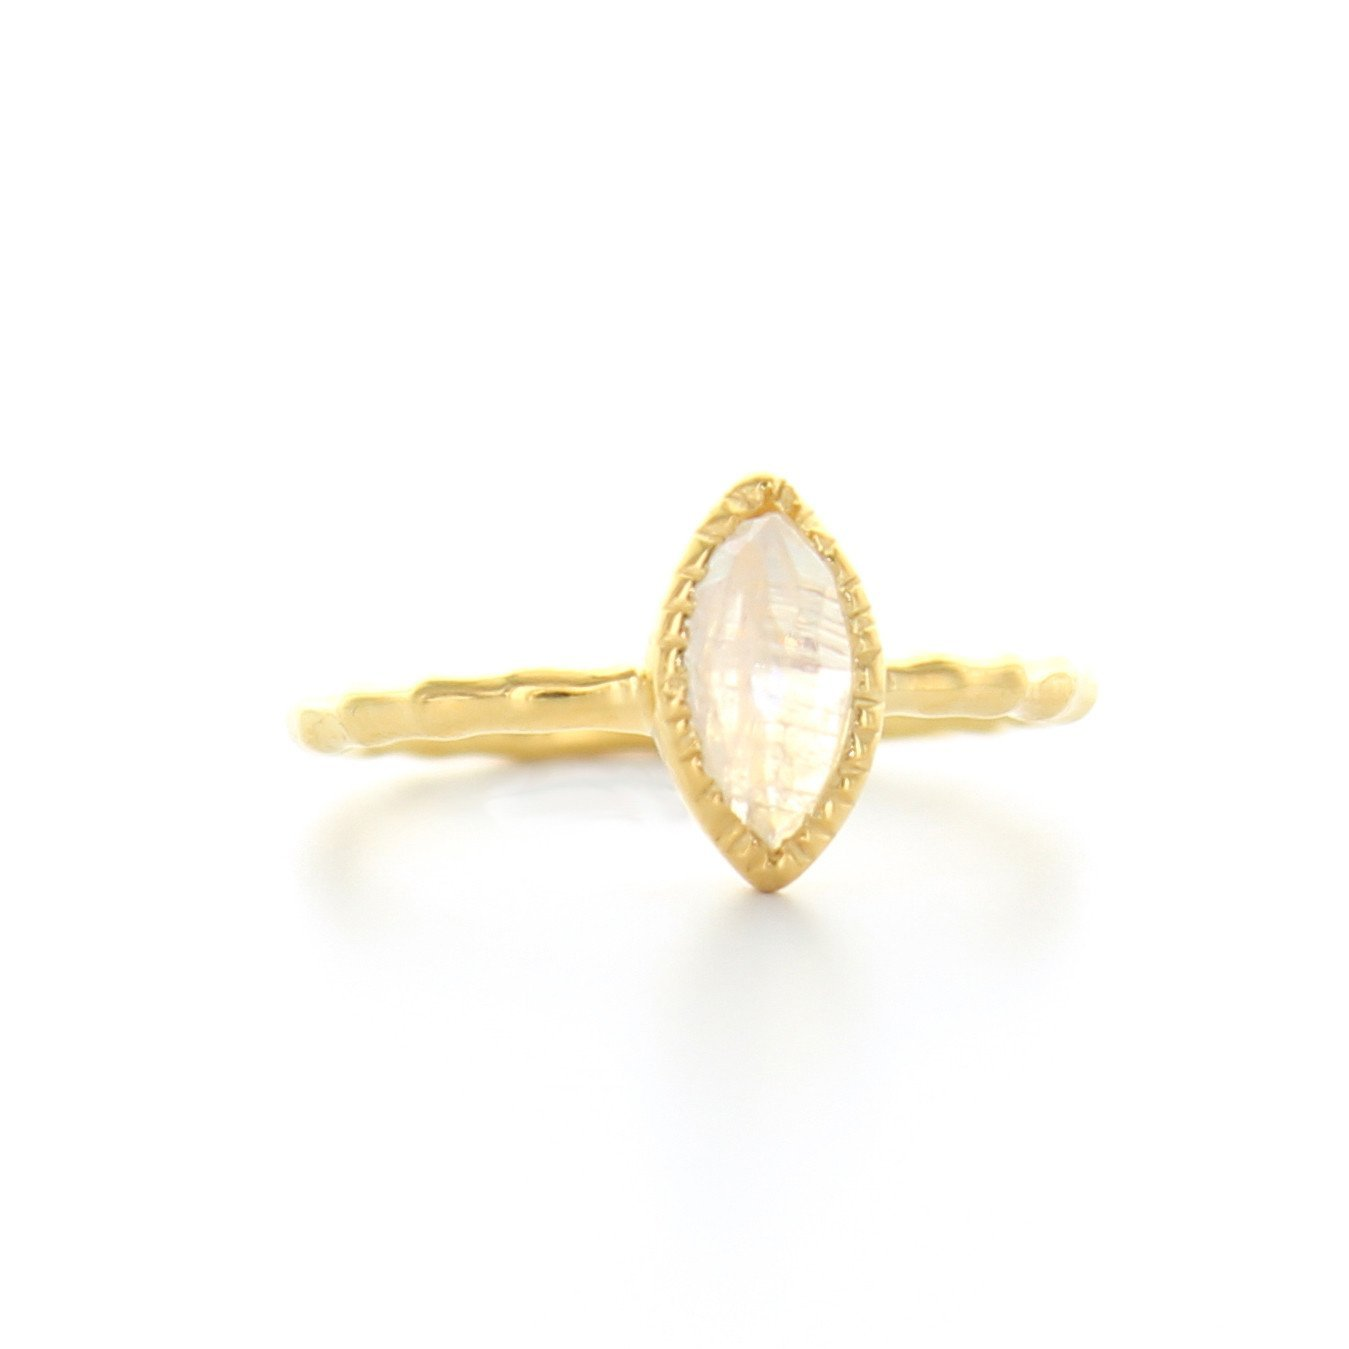 MINI TRUST MARQUISE RING - MOONSTONE & GOLD - SO PRETTY CARA COTTER